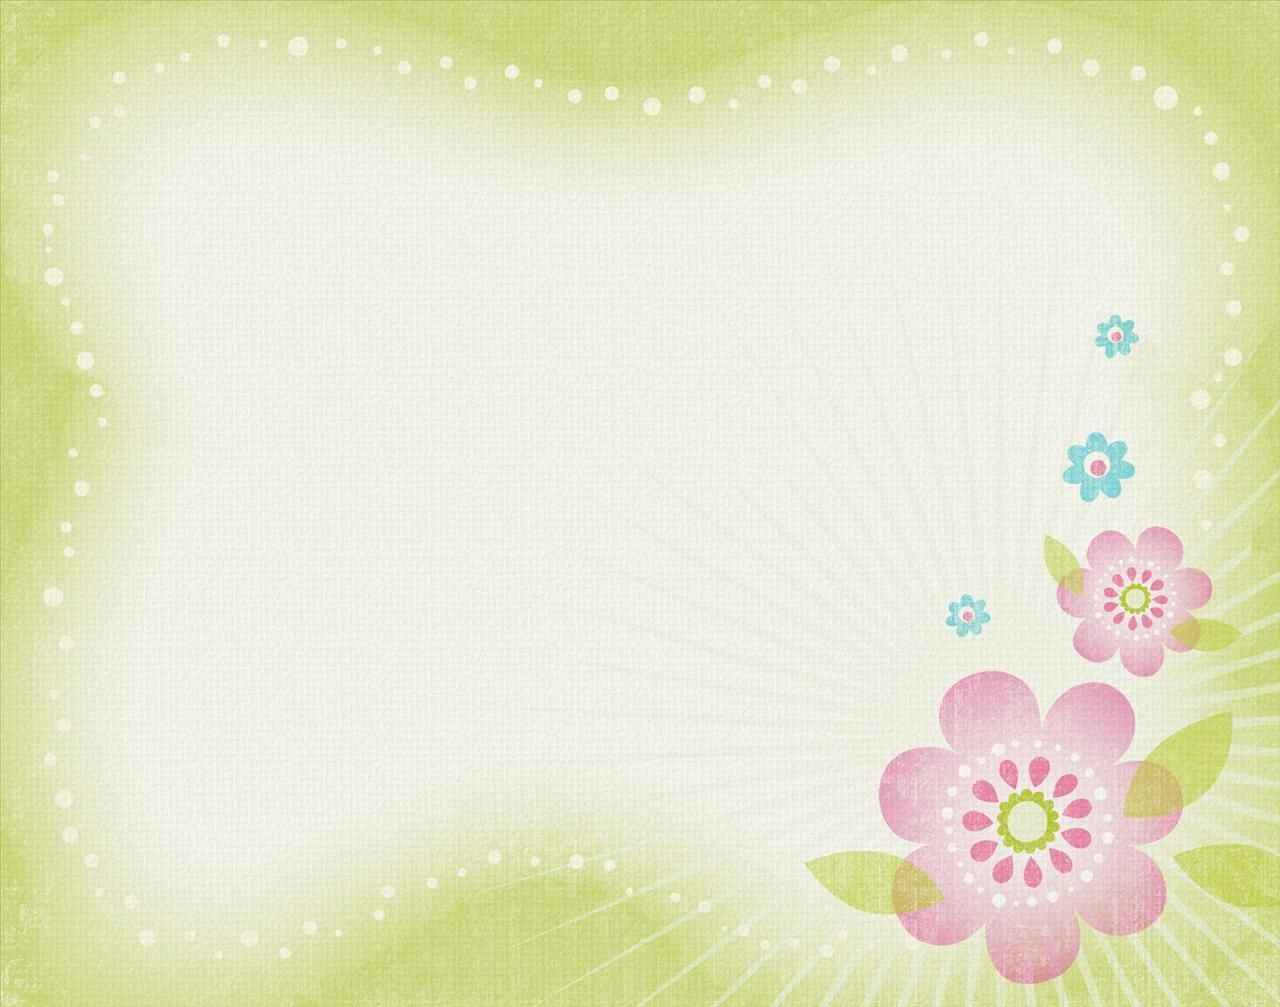 Picaboo Free Backgrounds View Entry Flower Frame Frame Background Cool Backgrounds